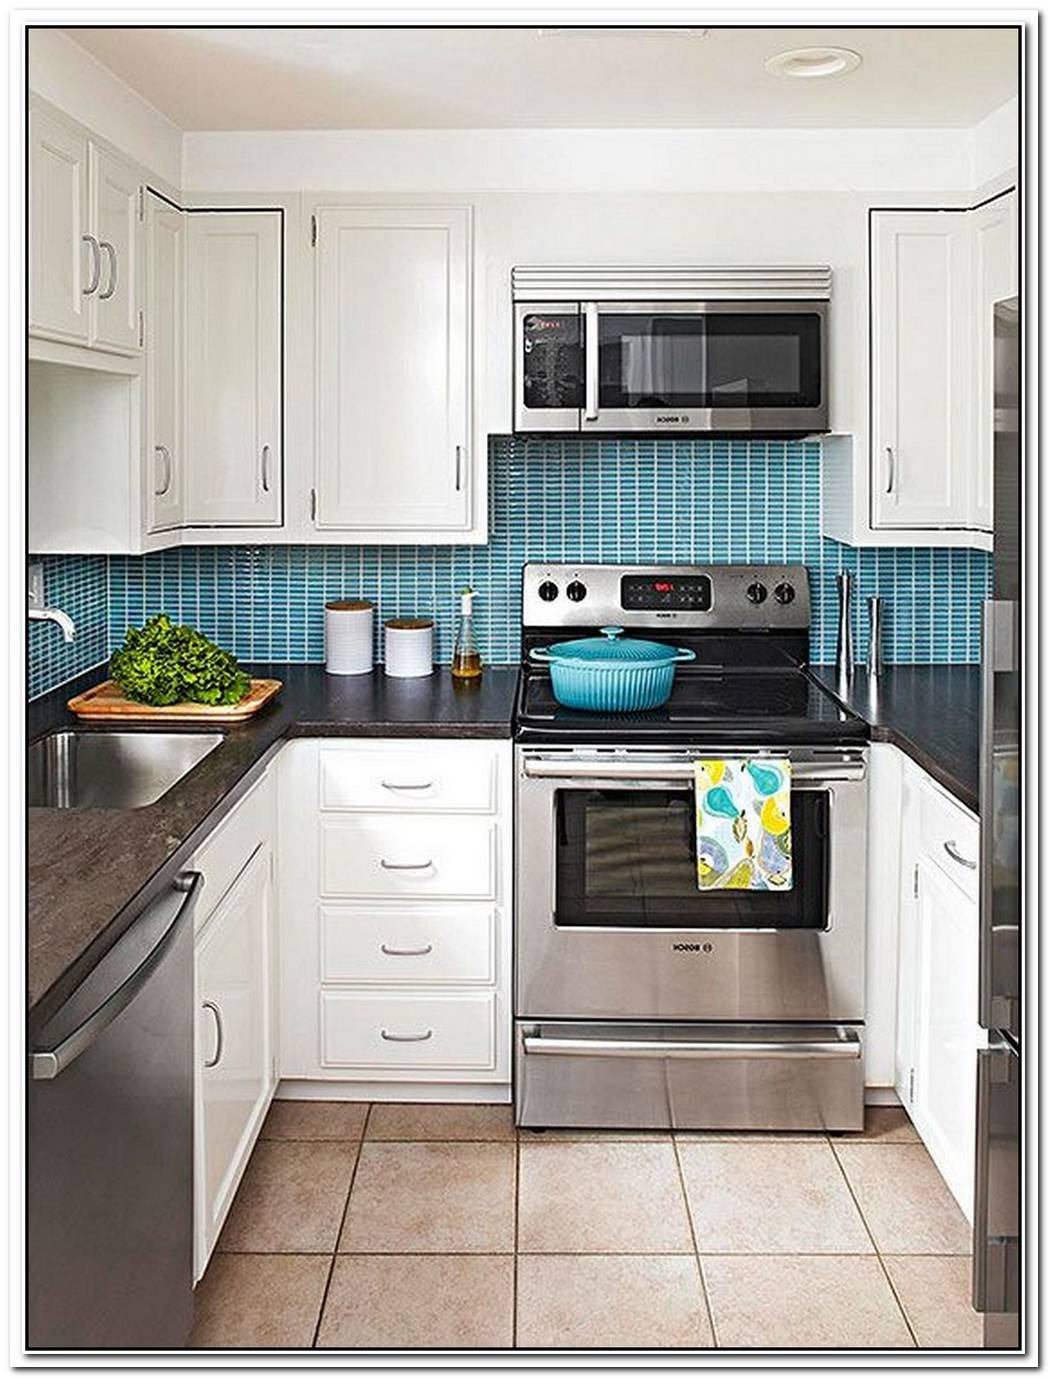 Every Kitchen Deserves A Pop Of Color Like This